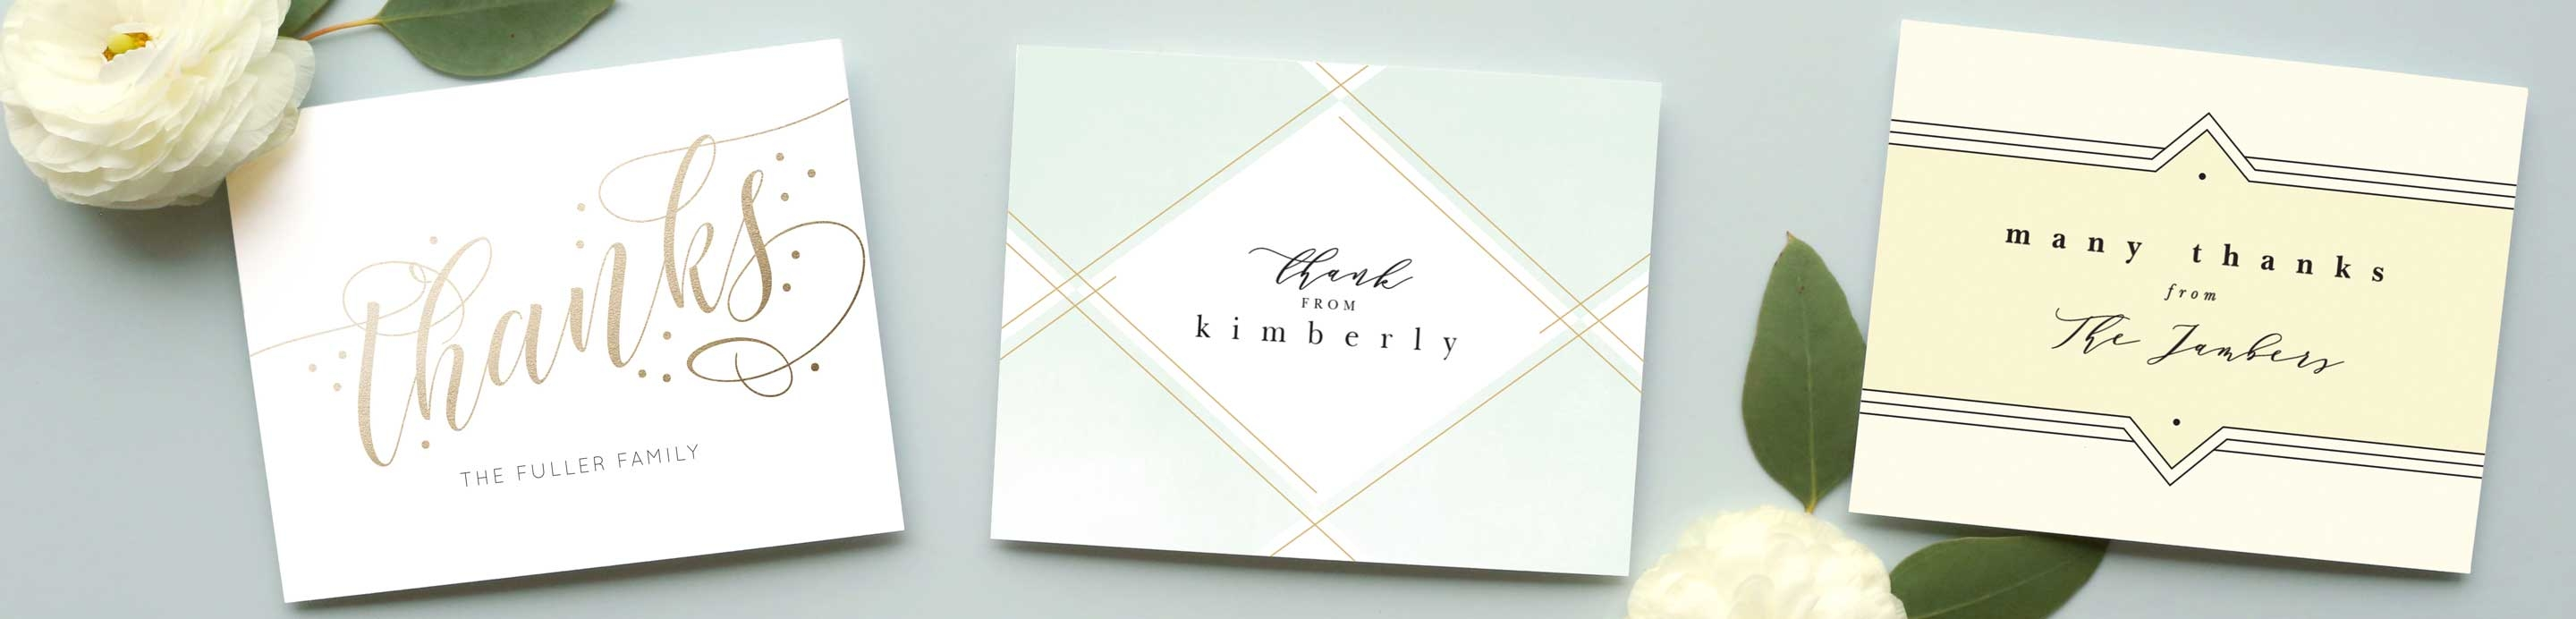 Baby Shower Thank You Cards Design Yours Instantly Online Basic Invite